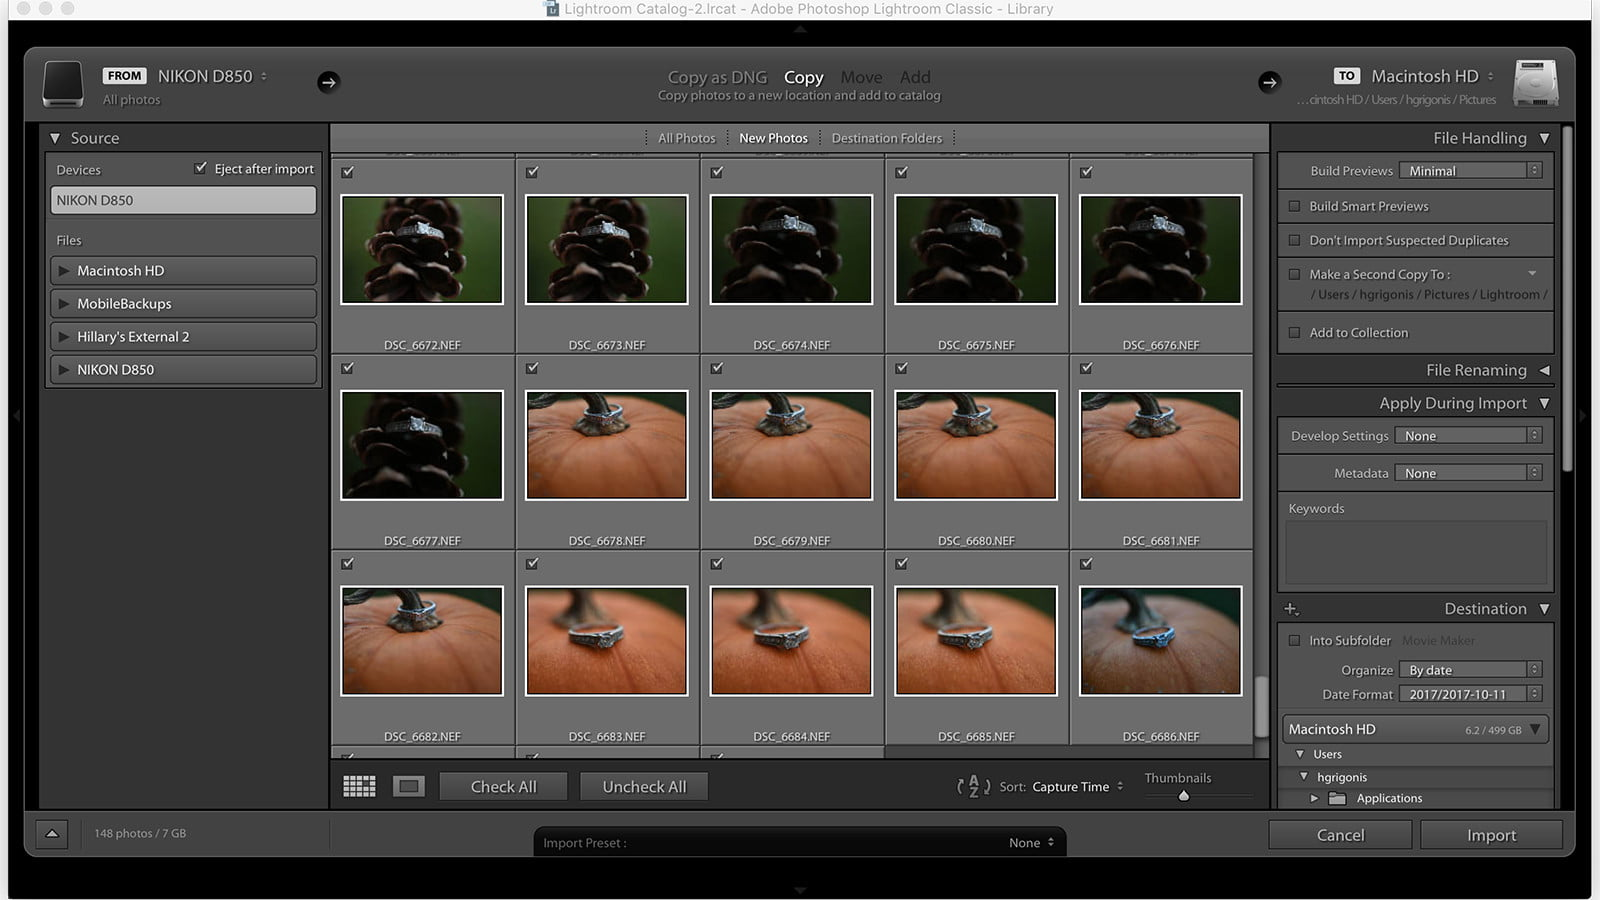 lightroom 7 2 download